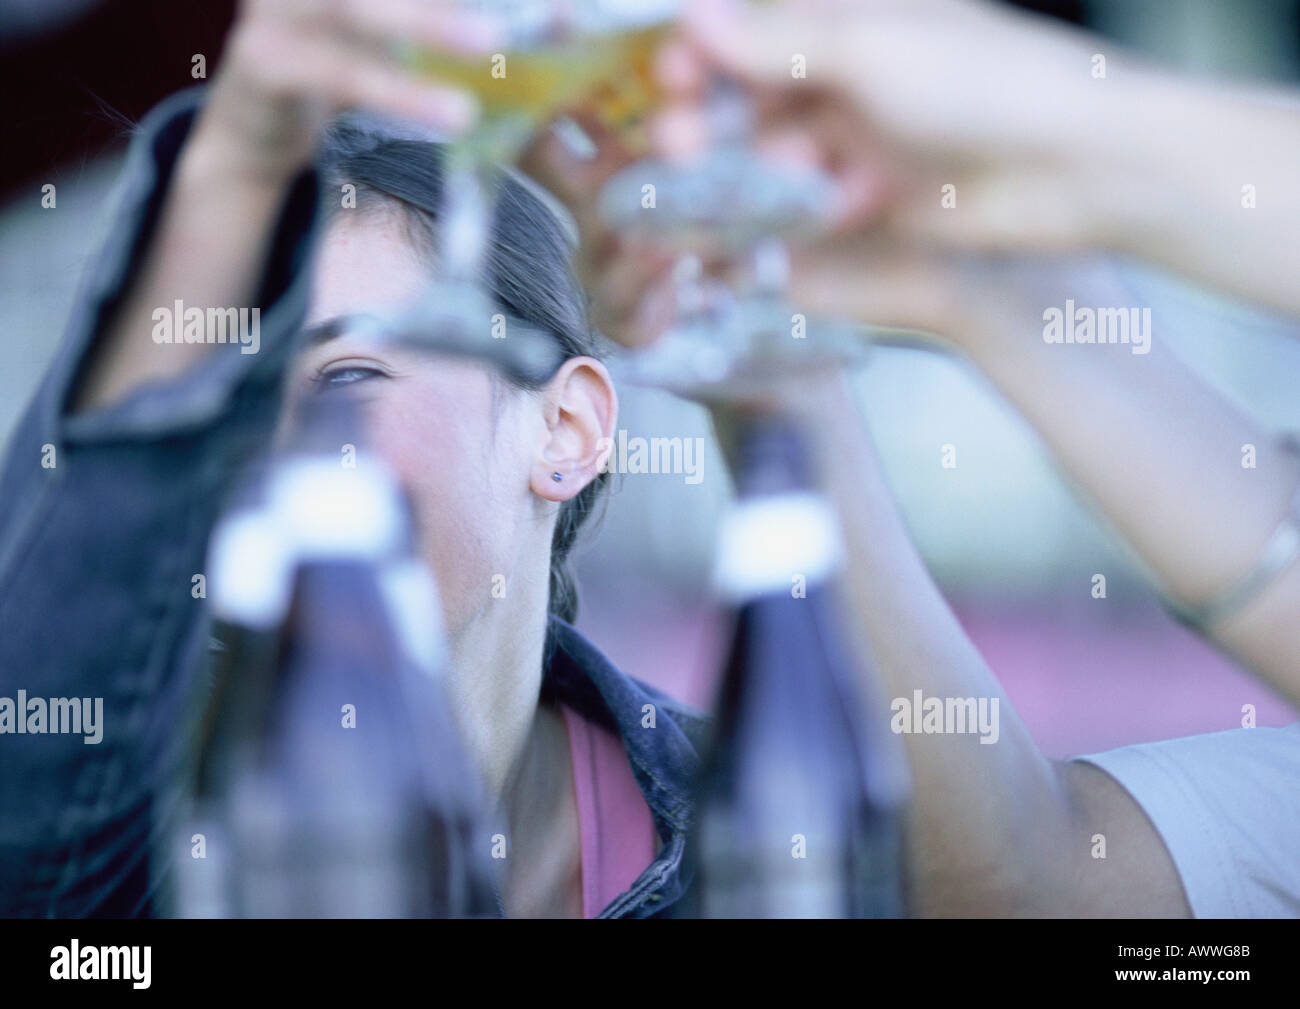 People clanking glasses together, close-up - Stock Image